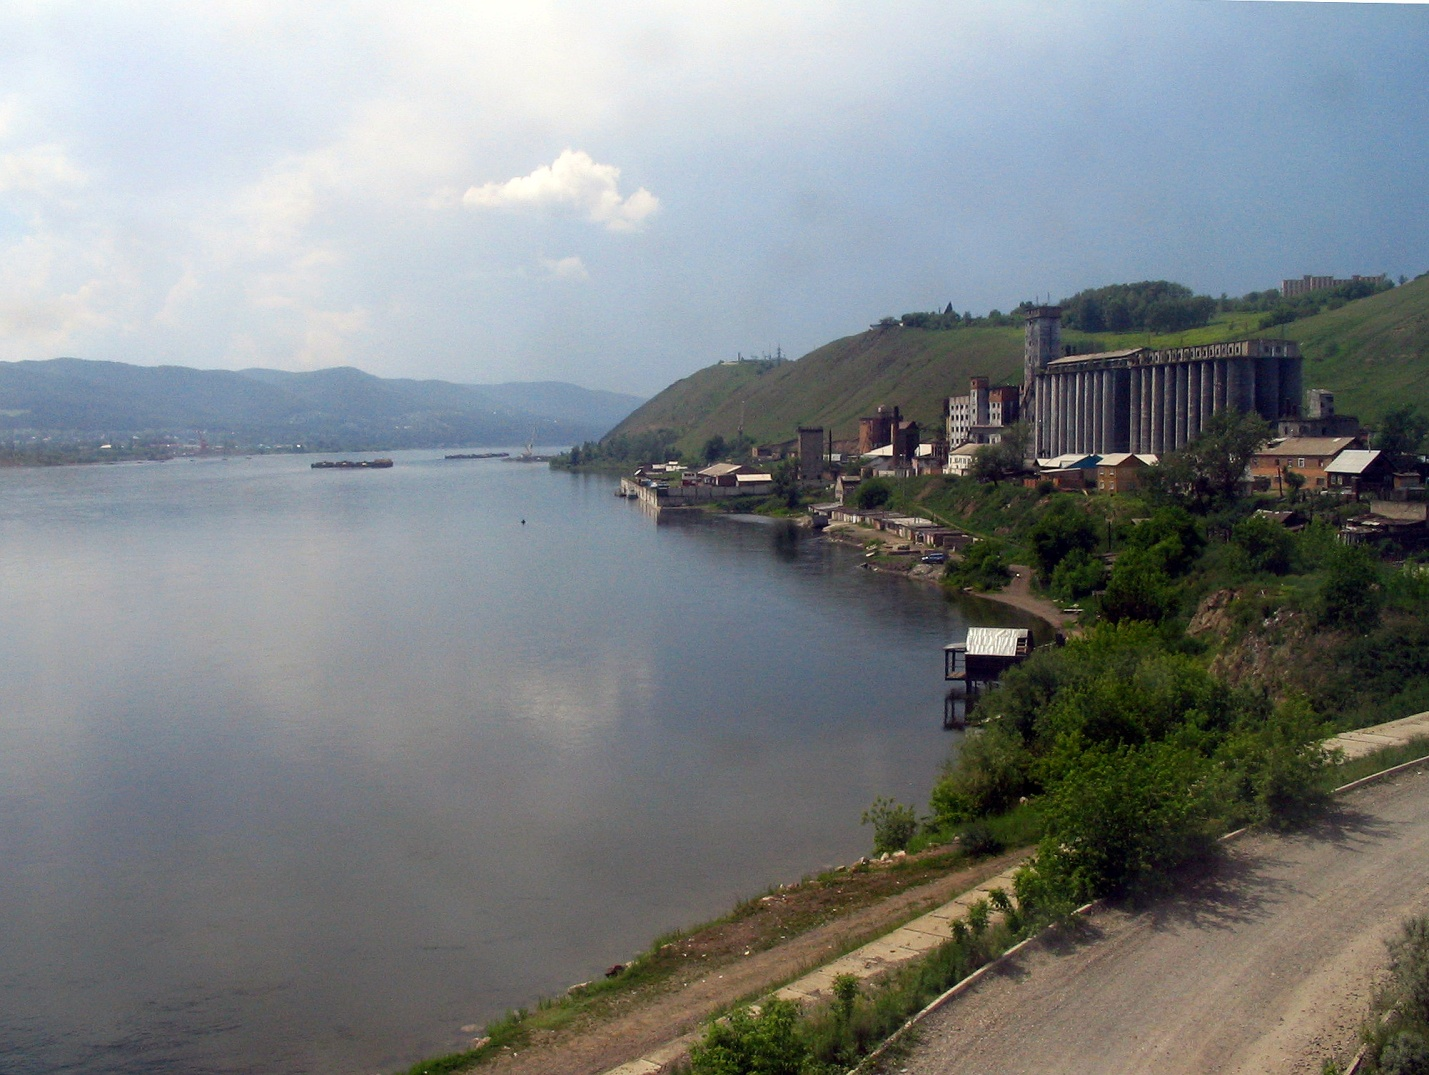 https://upload.wikimedia.org/wikipedia/commons/2/26/Bank_of_Yenisei_River.jpg